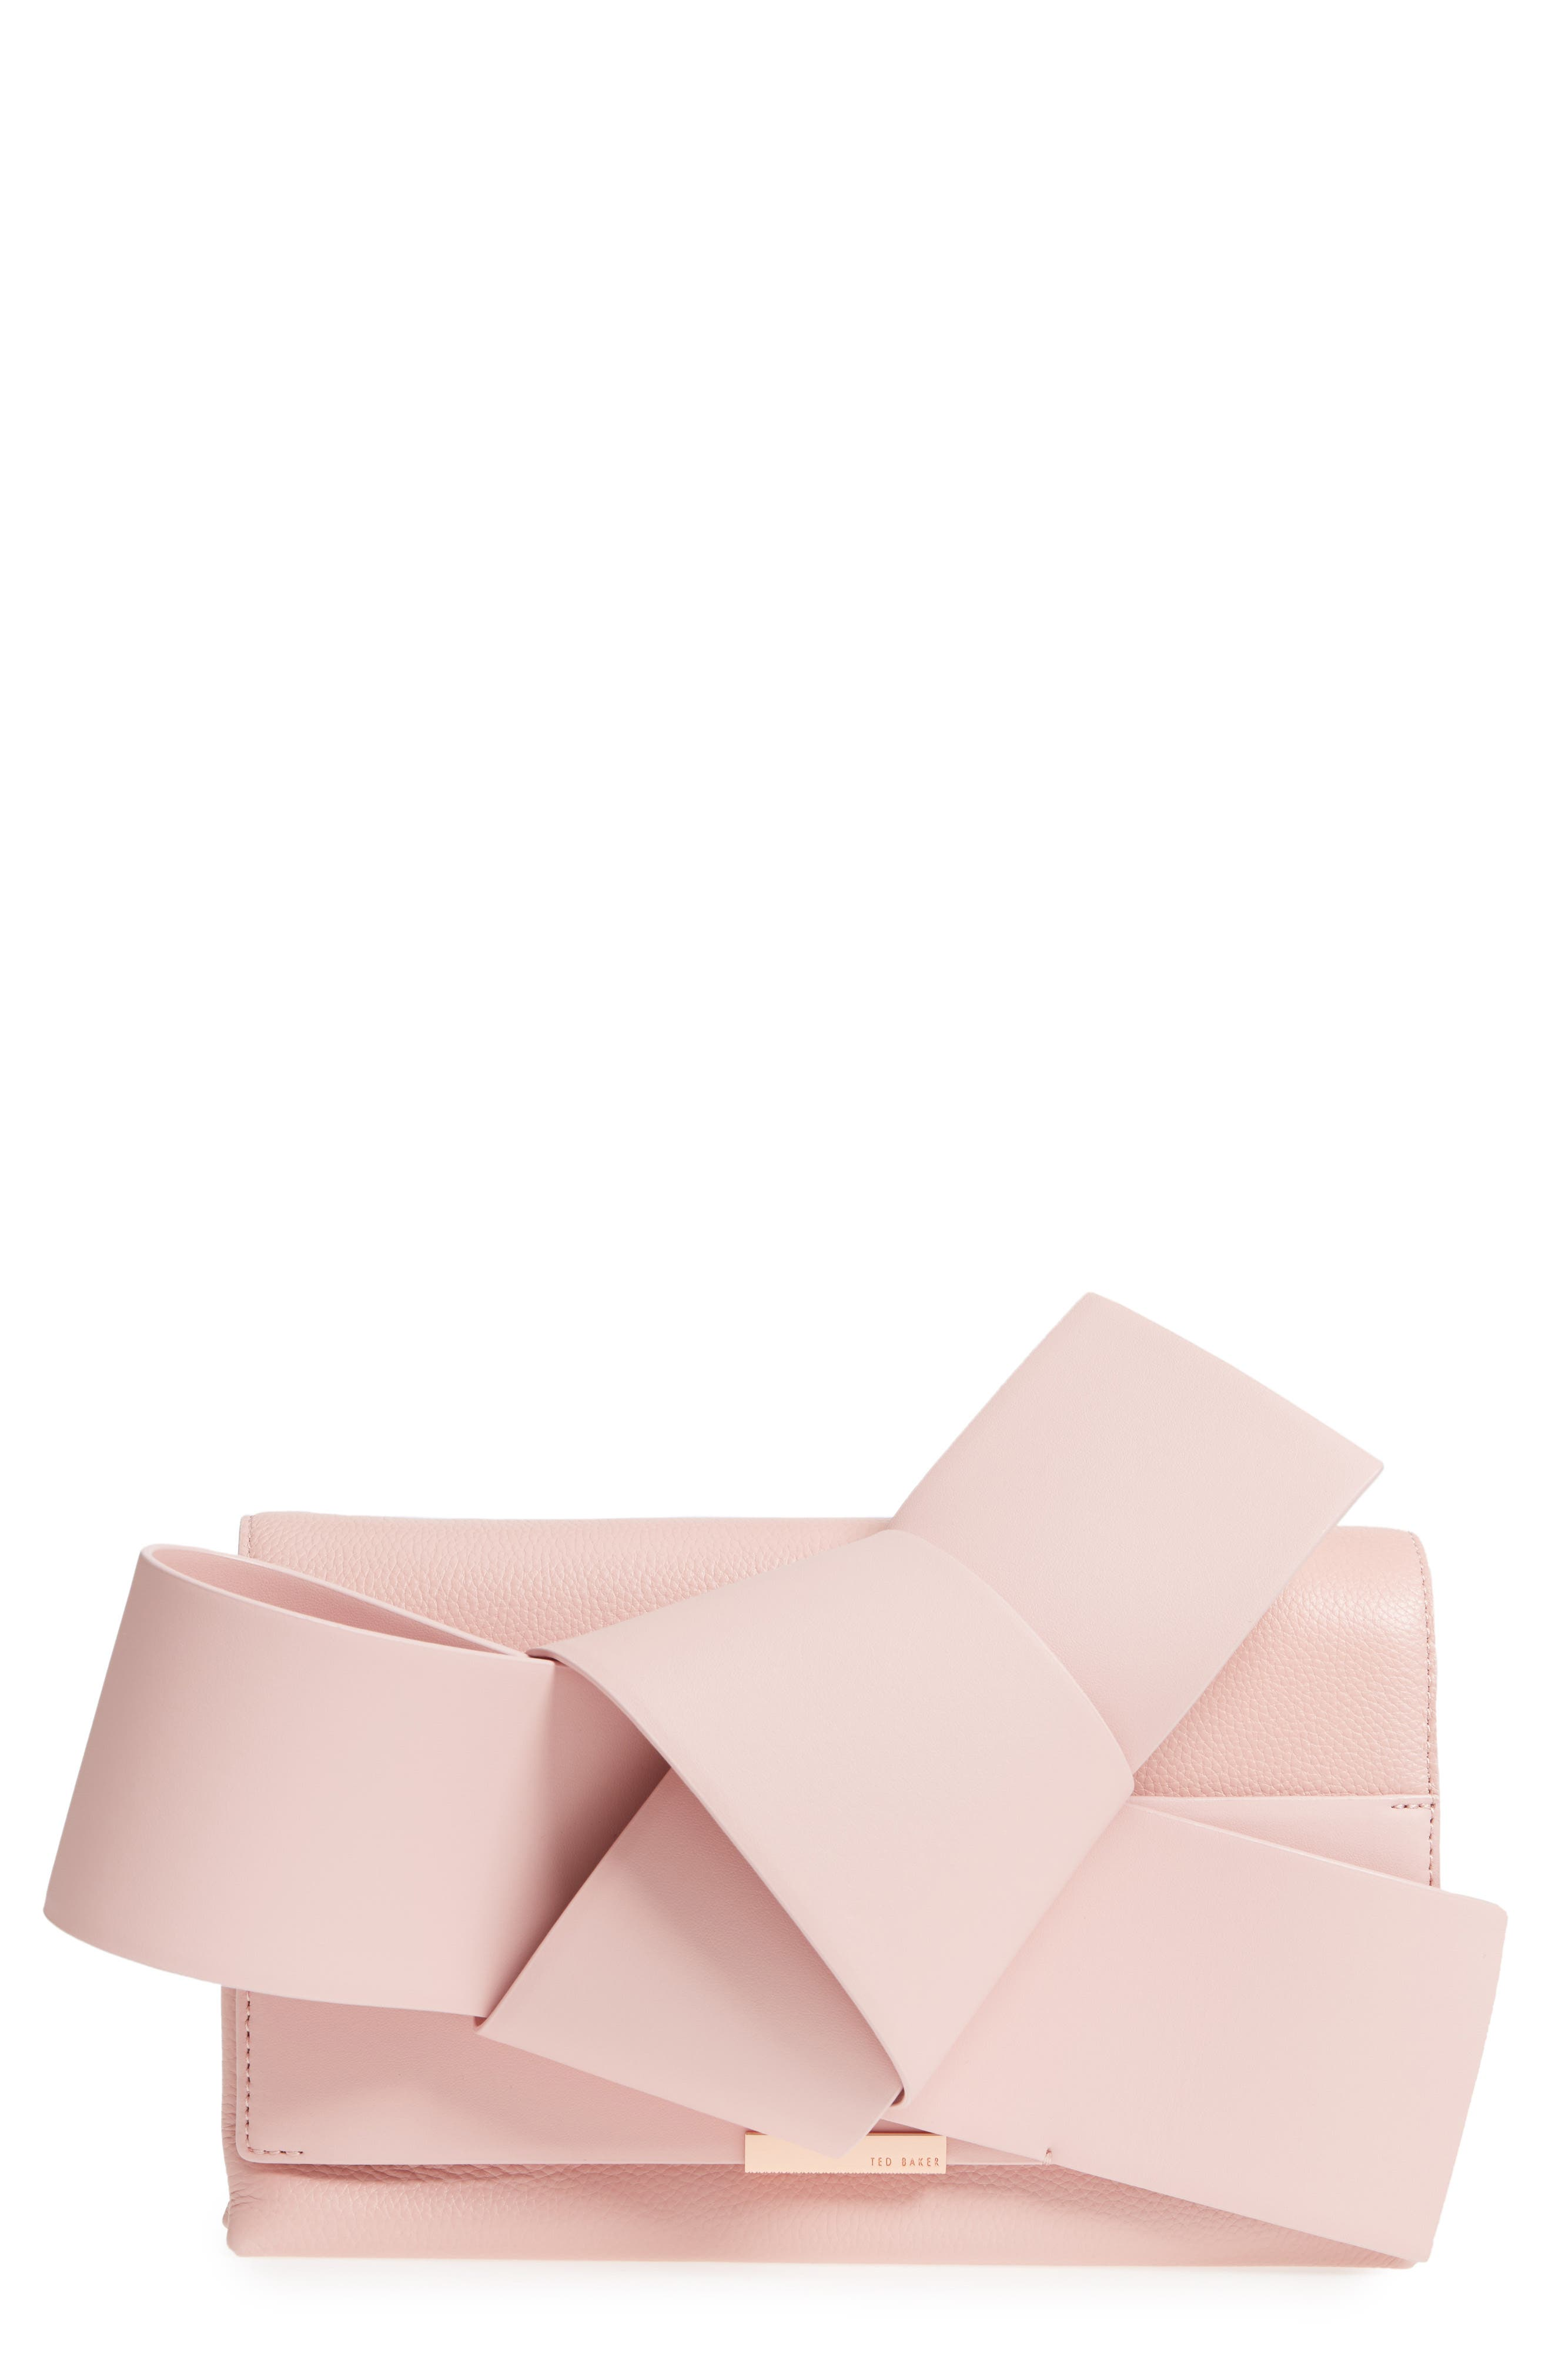 Knotted Bow Leather Clutch,                             Main thumbnail 5, color,